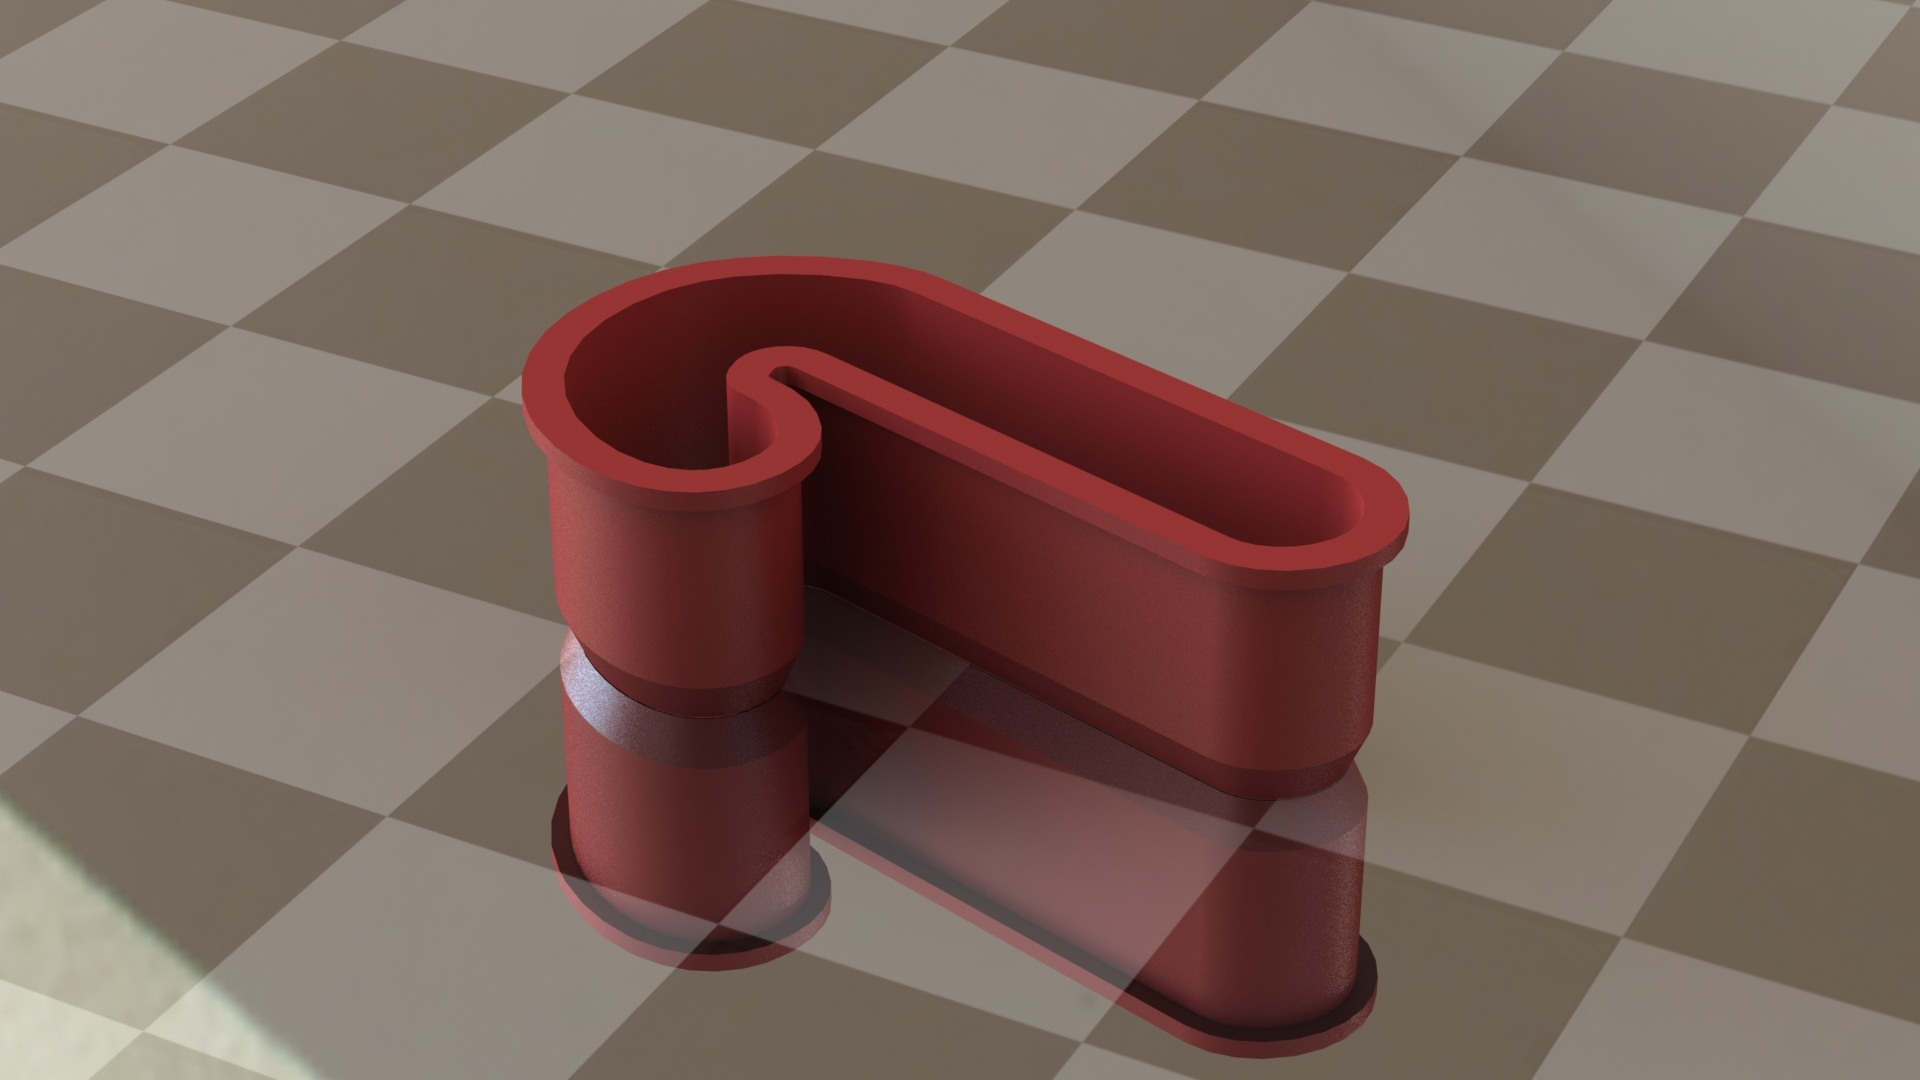 Candy Cane Render in SOLIDWORKS